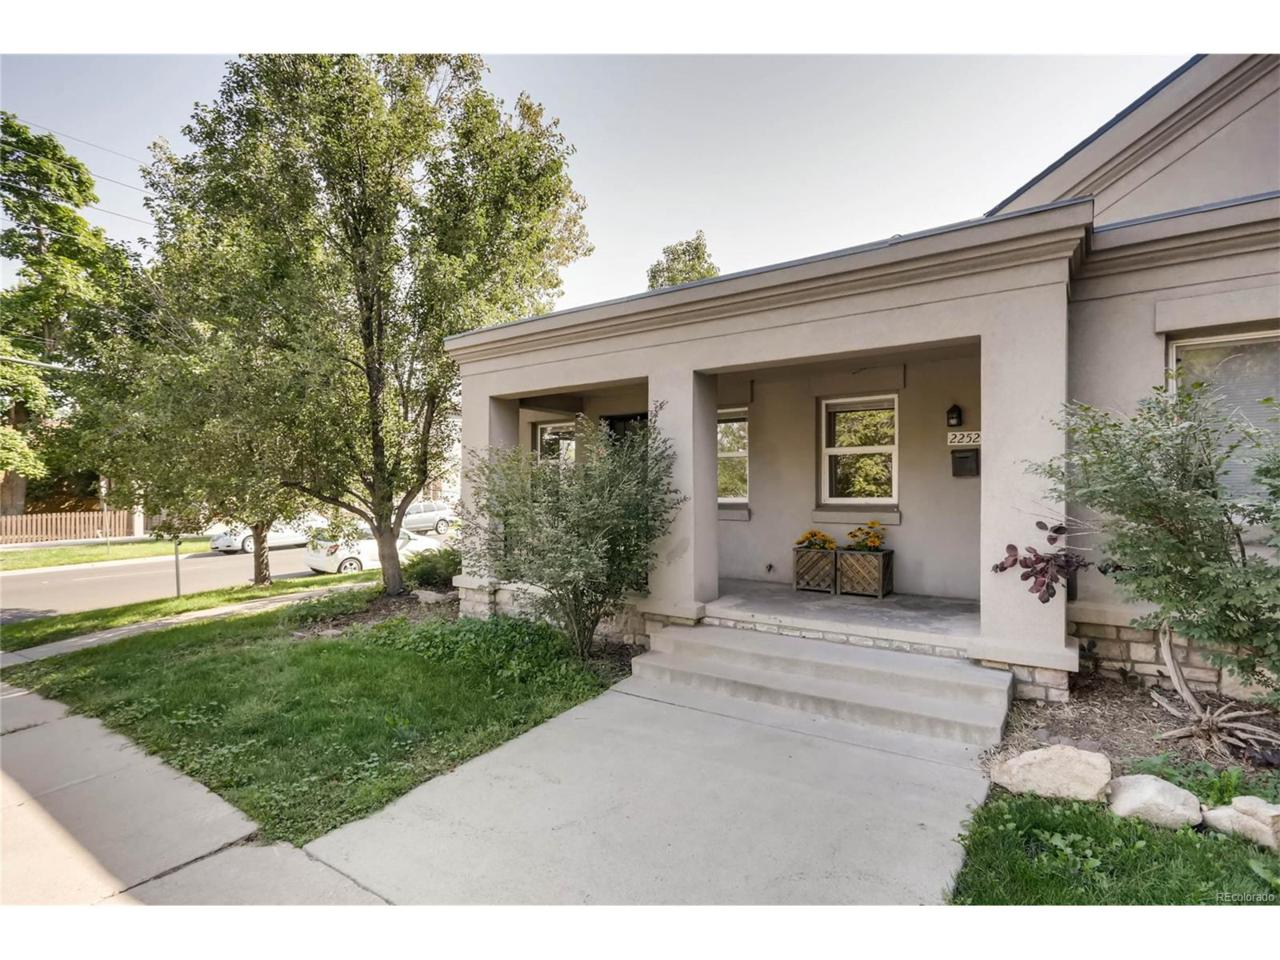 2256 Clarkson Street, Denver, CO 80205 (MLS #7414725) :: 8z Real Estate